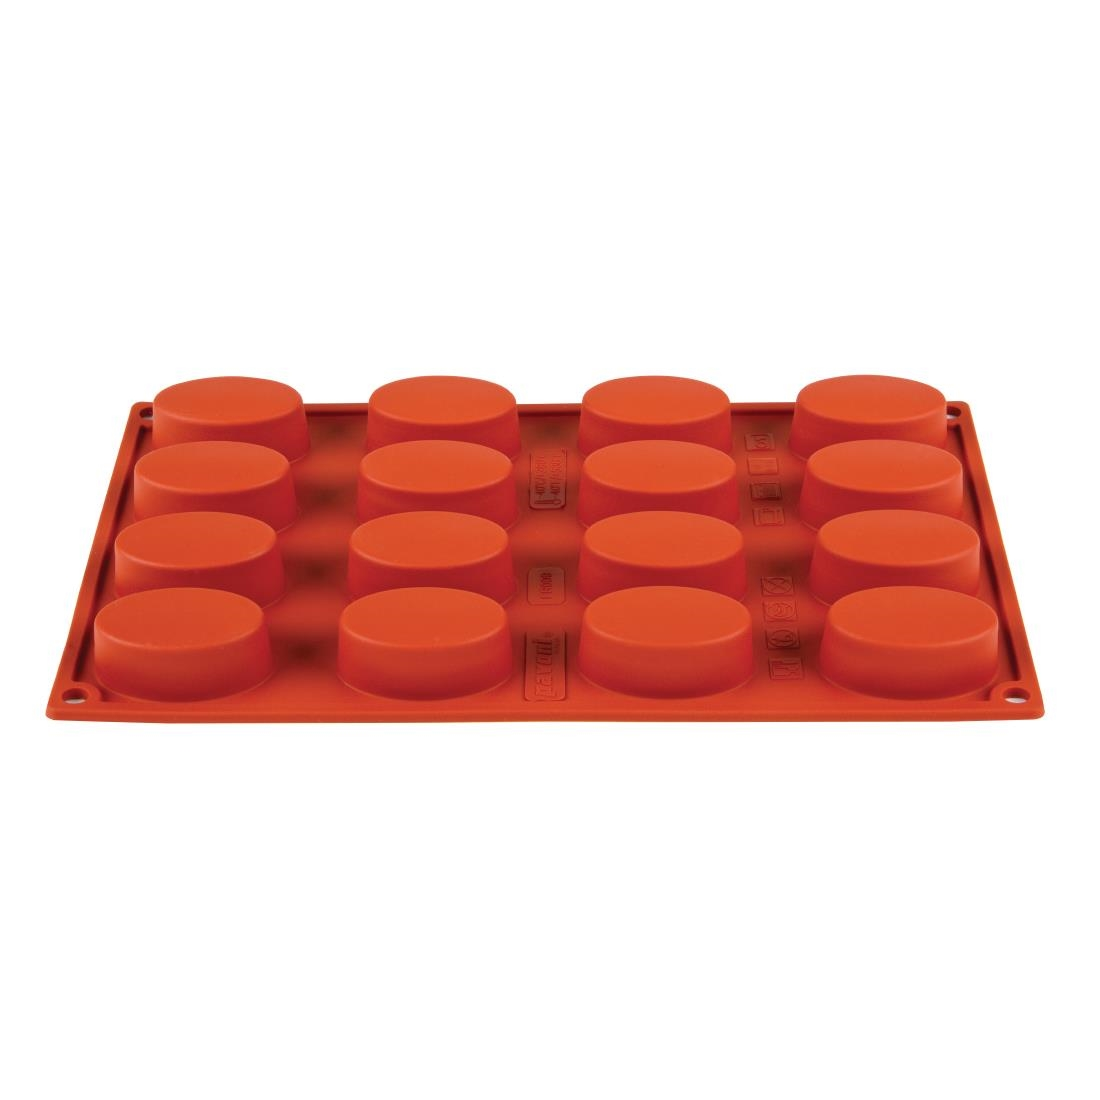 Pavoni Formaflex Silicone Oval Mould 16 Cup